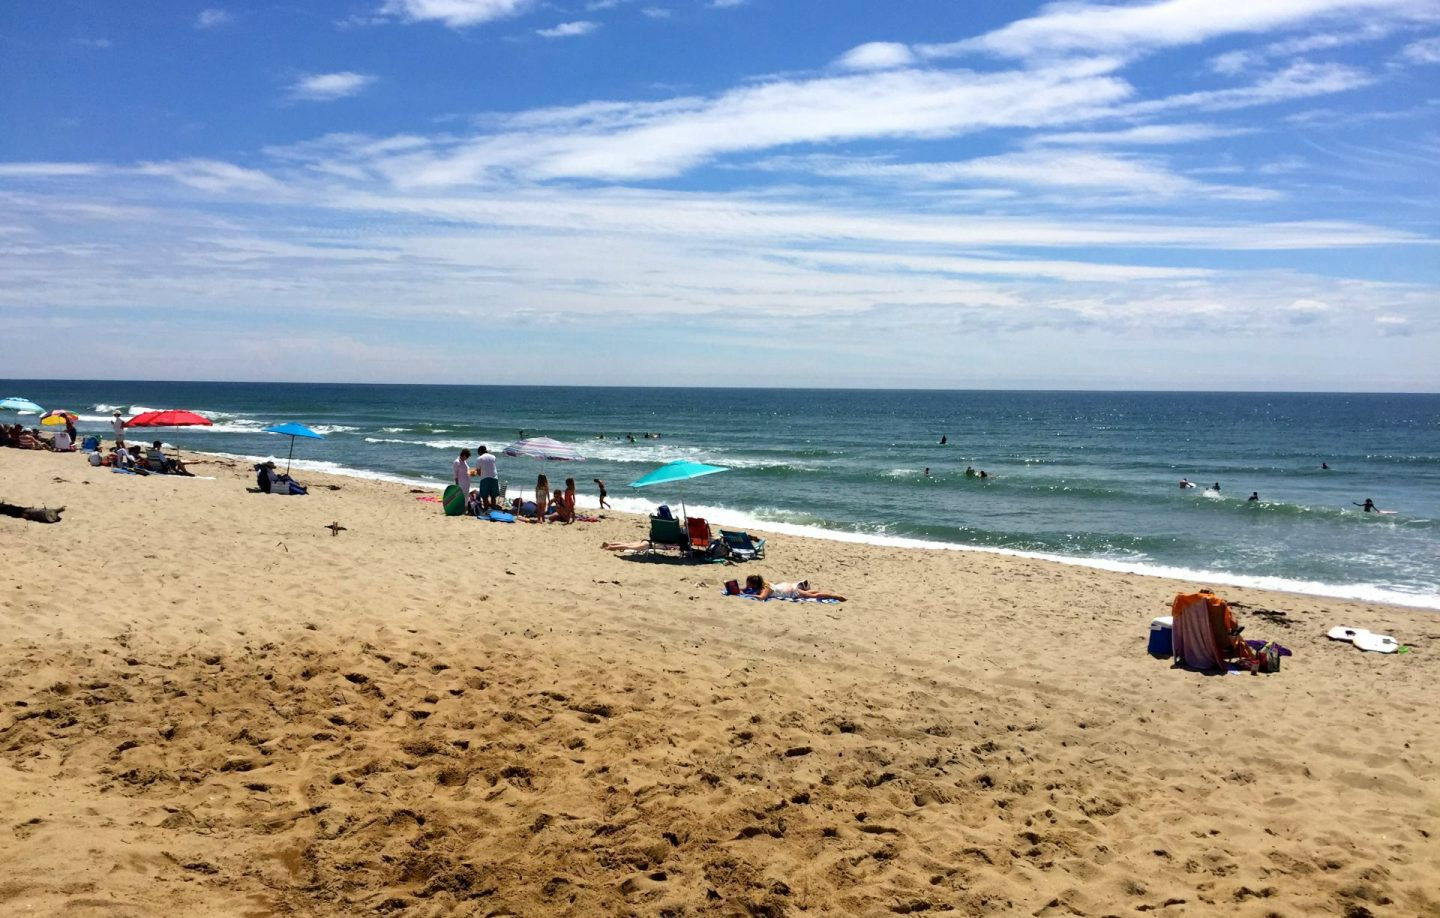 Nantucket Island: Best Family Friendly Beaches